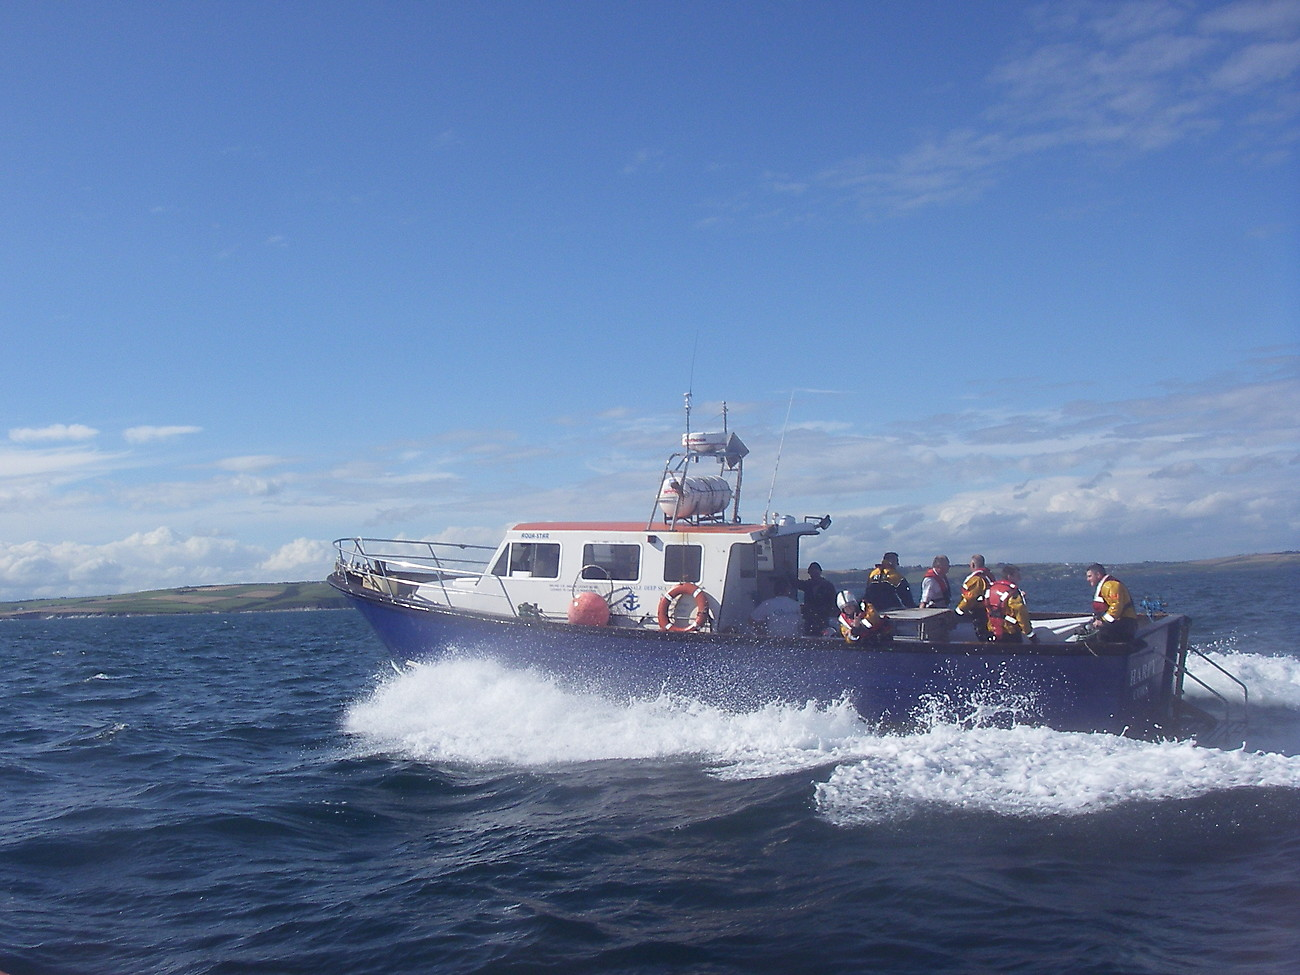 Exercise with Kinsale lifeboat crew.